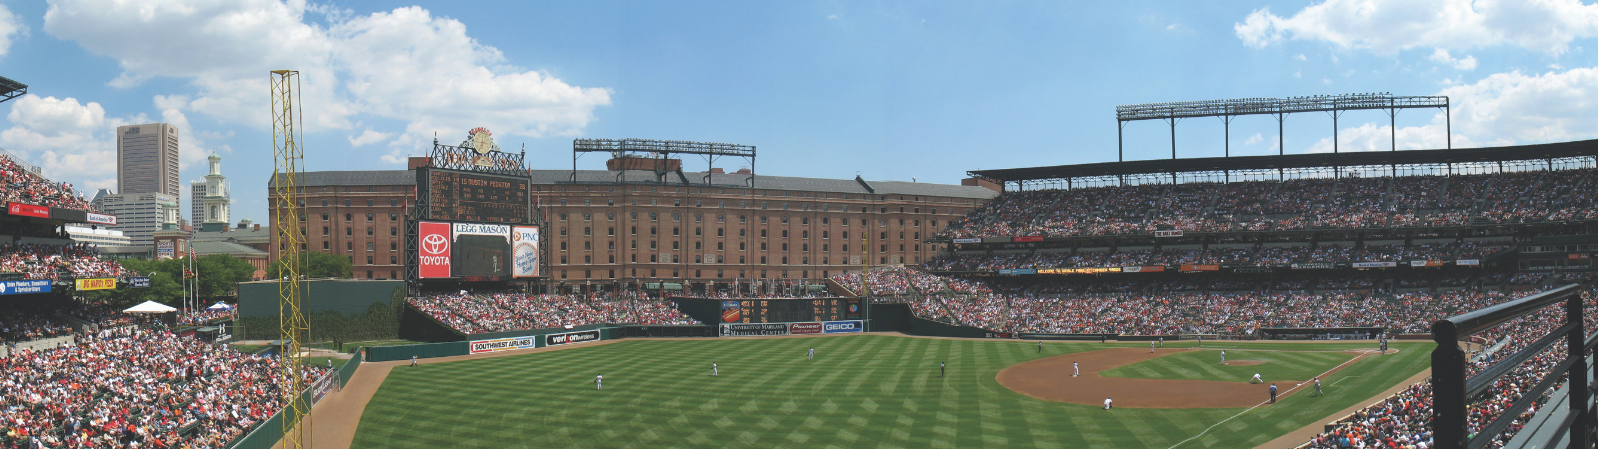 Oriole Park, Baltimore, MD